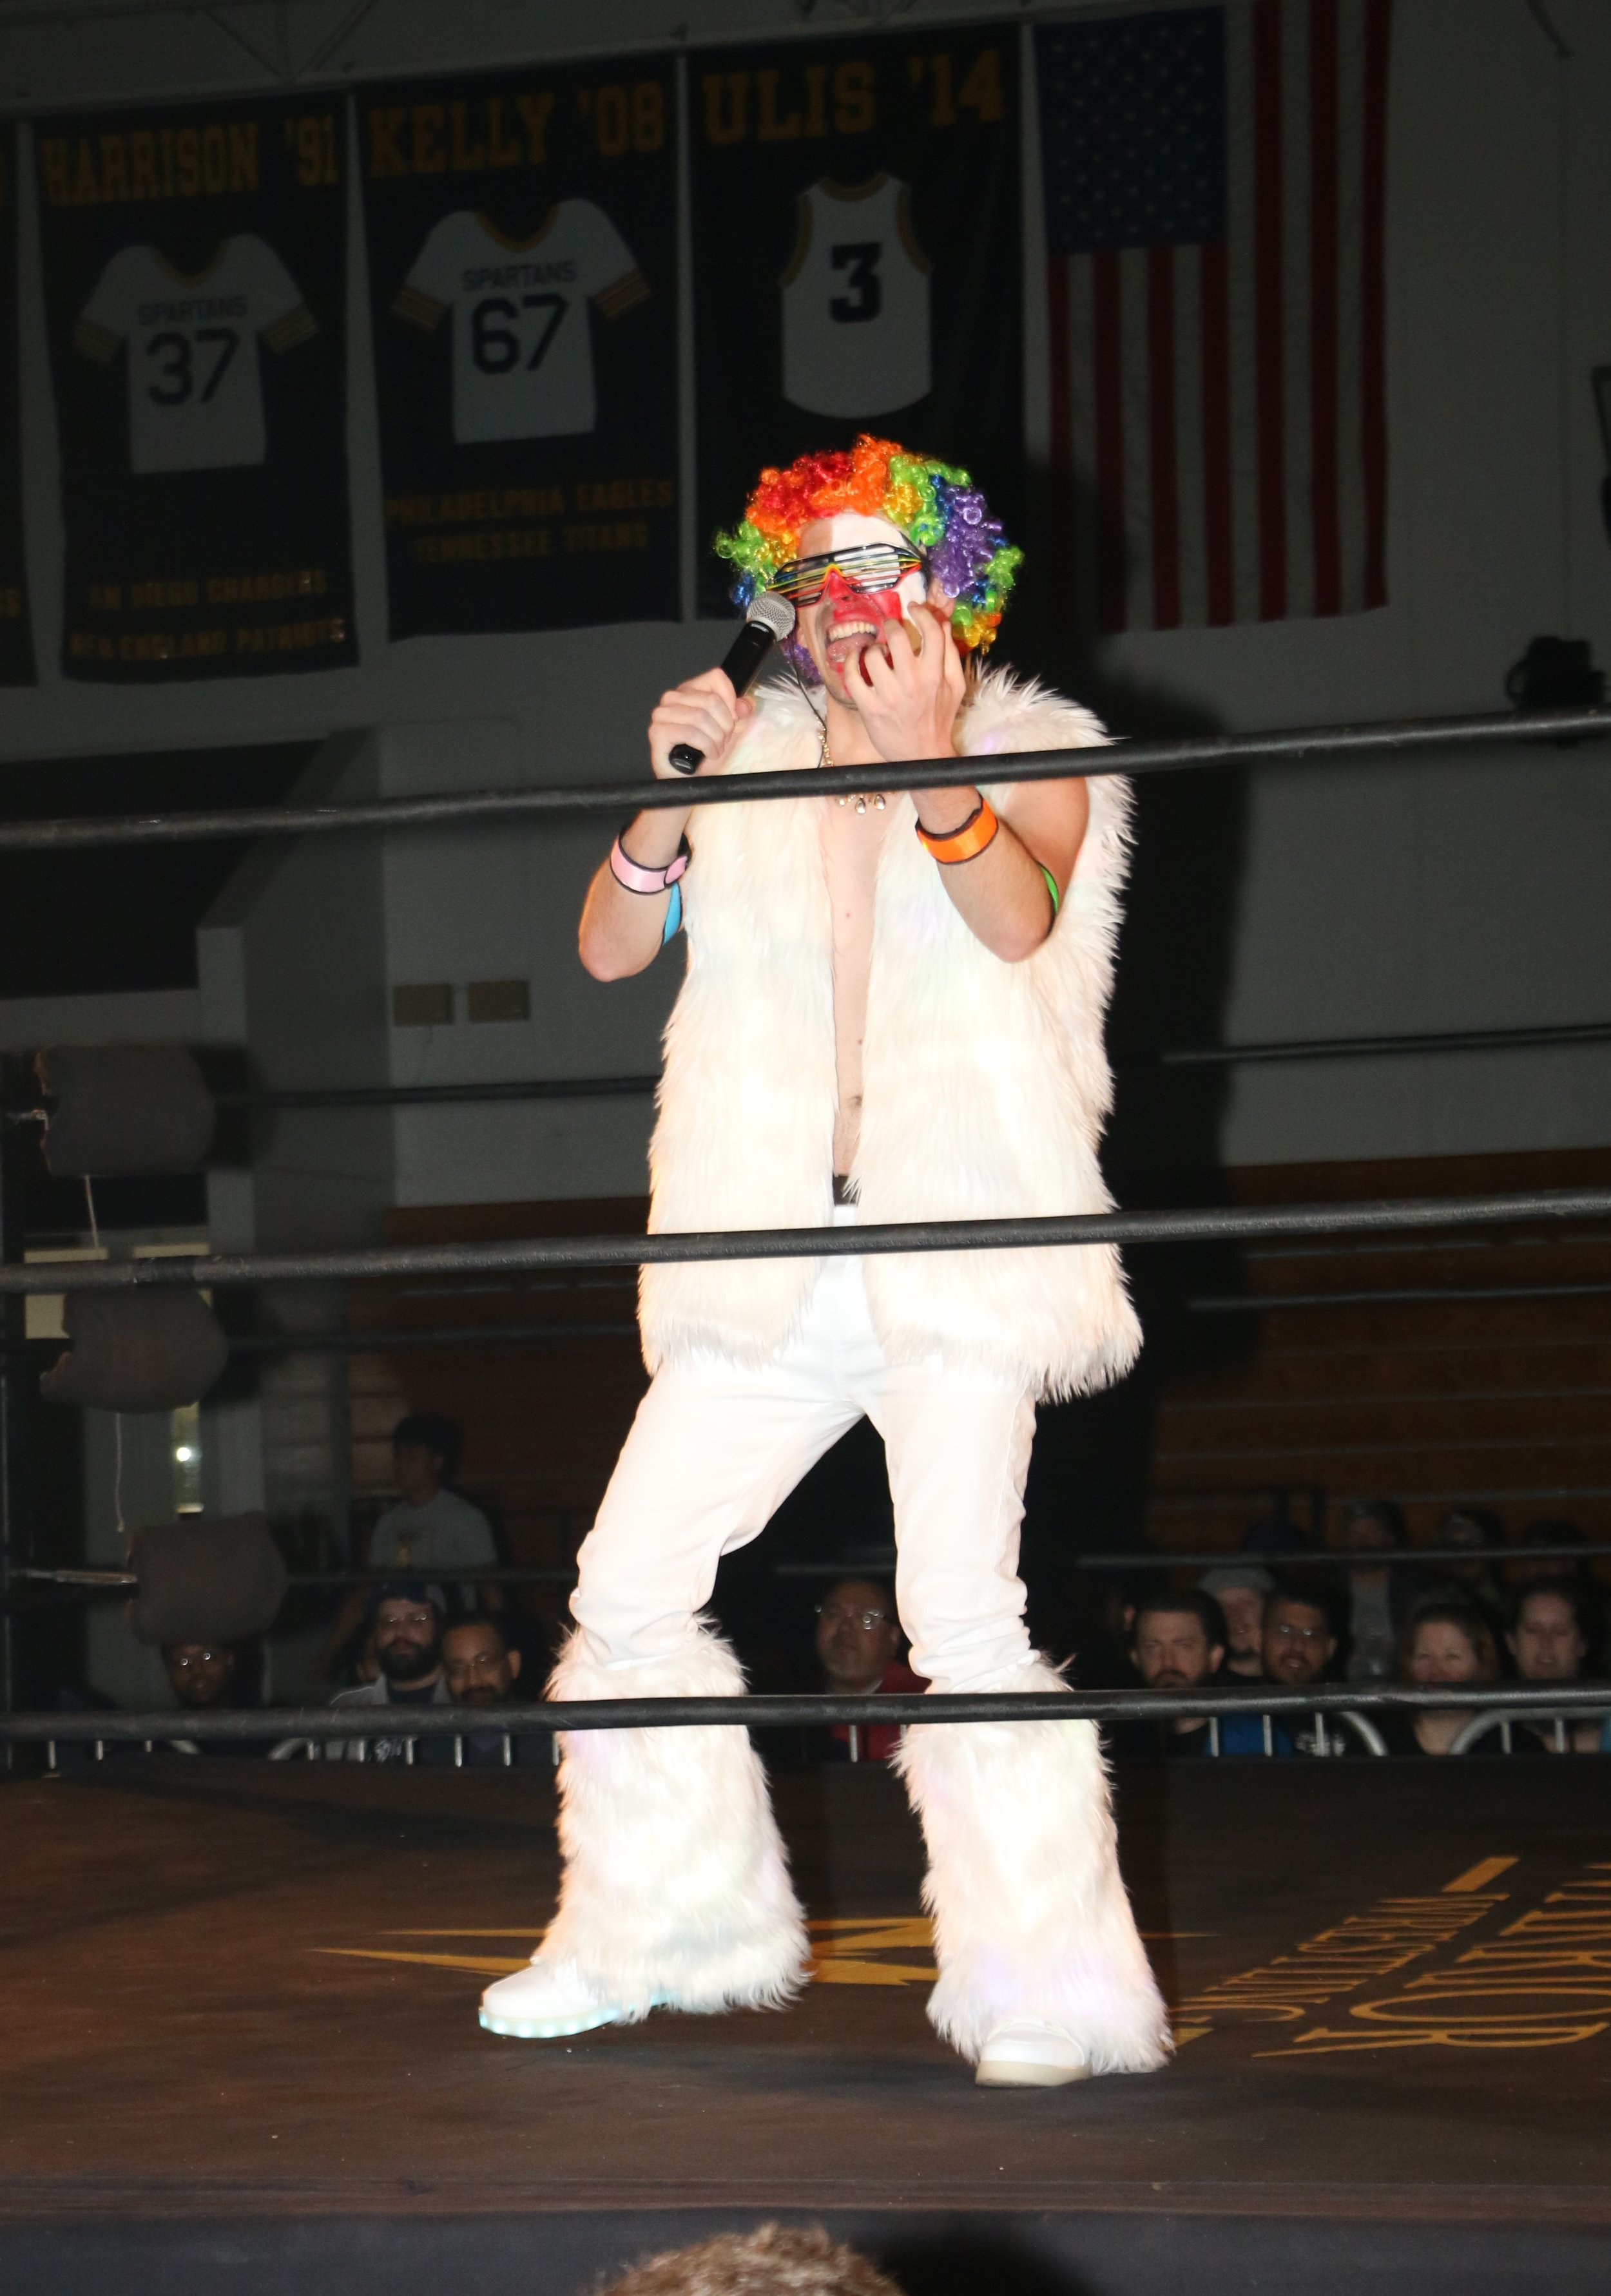 Frank the Clown, who has been a mainstay at Warrior Wrestling, will face off against WWE Hall of Famer Mick Foley in a hardcore challenge at Sunday's Warrior Wrestling 6 in Chicago Heights.  (Photo by Mike Pankow)